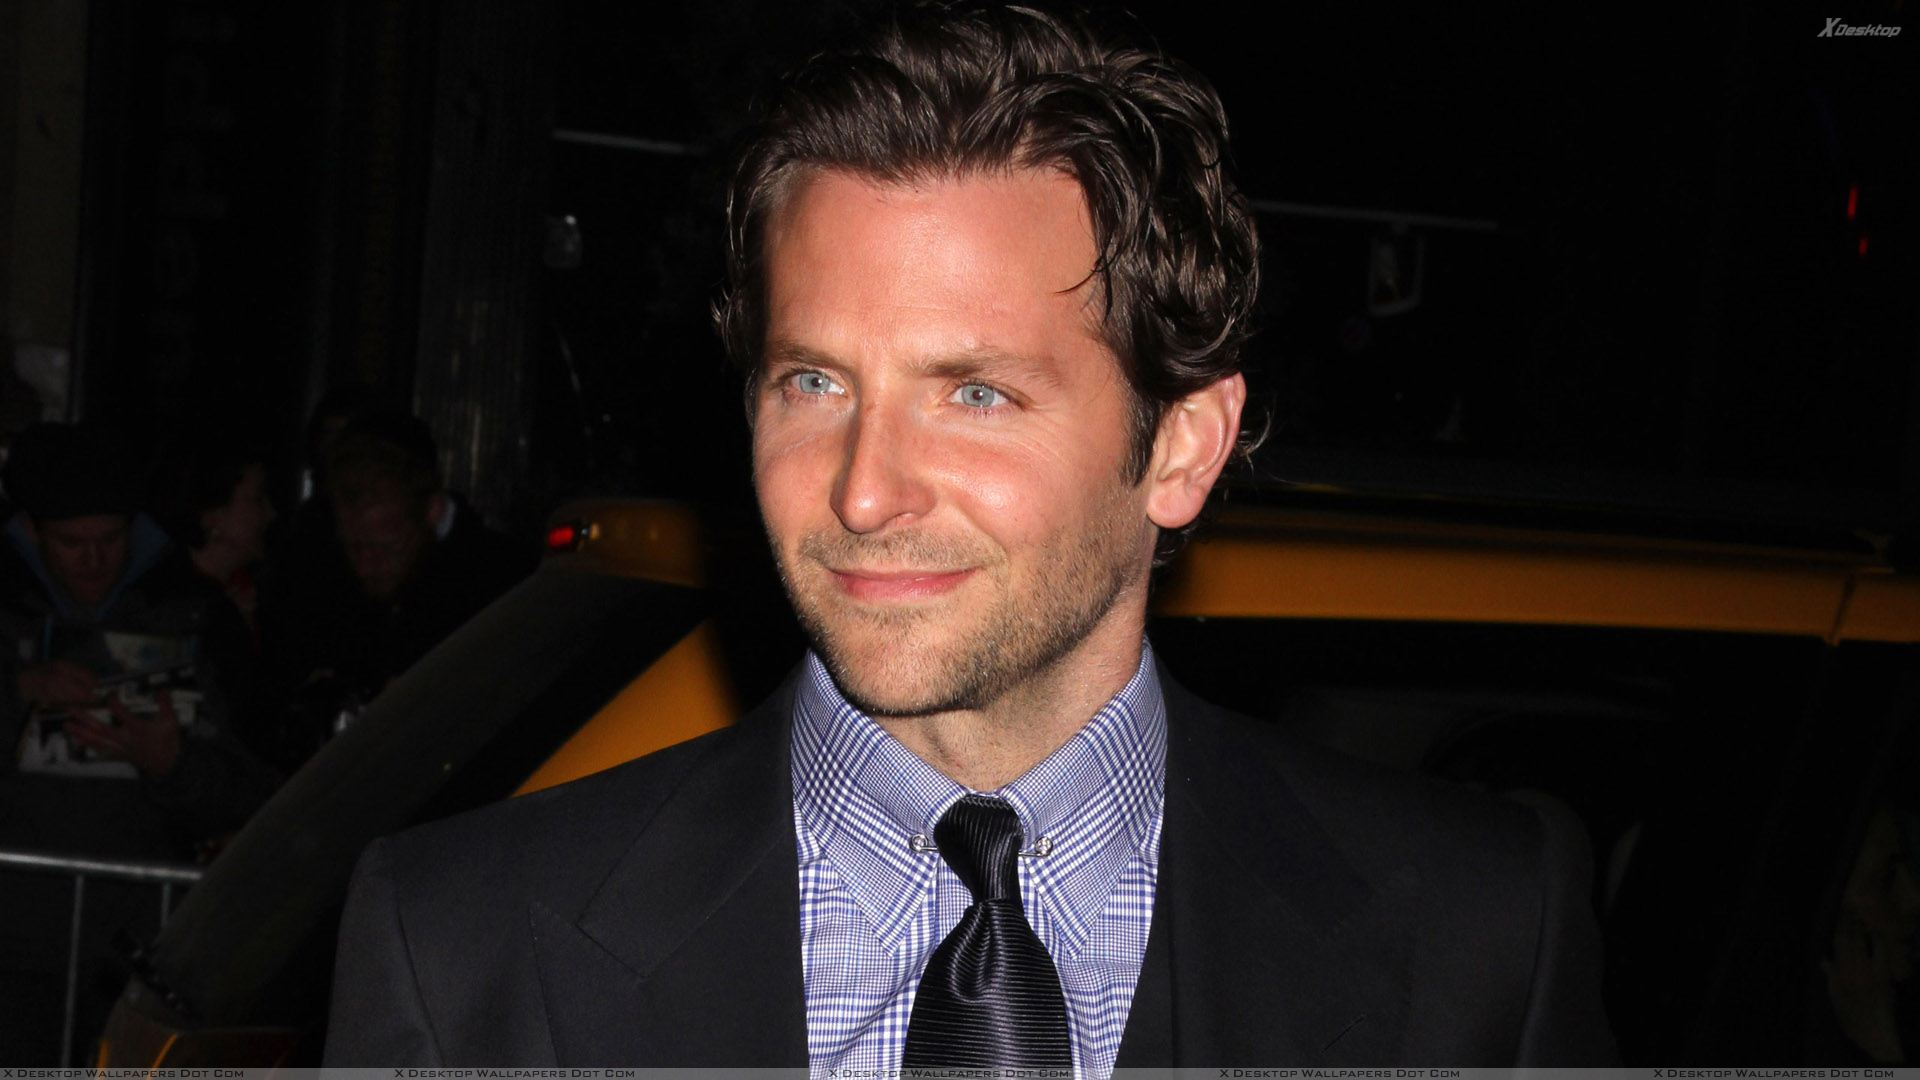 Bradley Cooper Wallpapers High Resolution and Quality Download 1920x1080